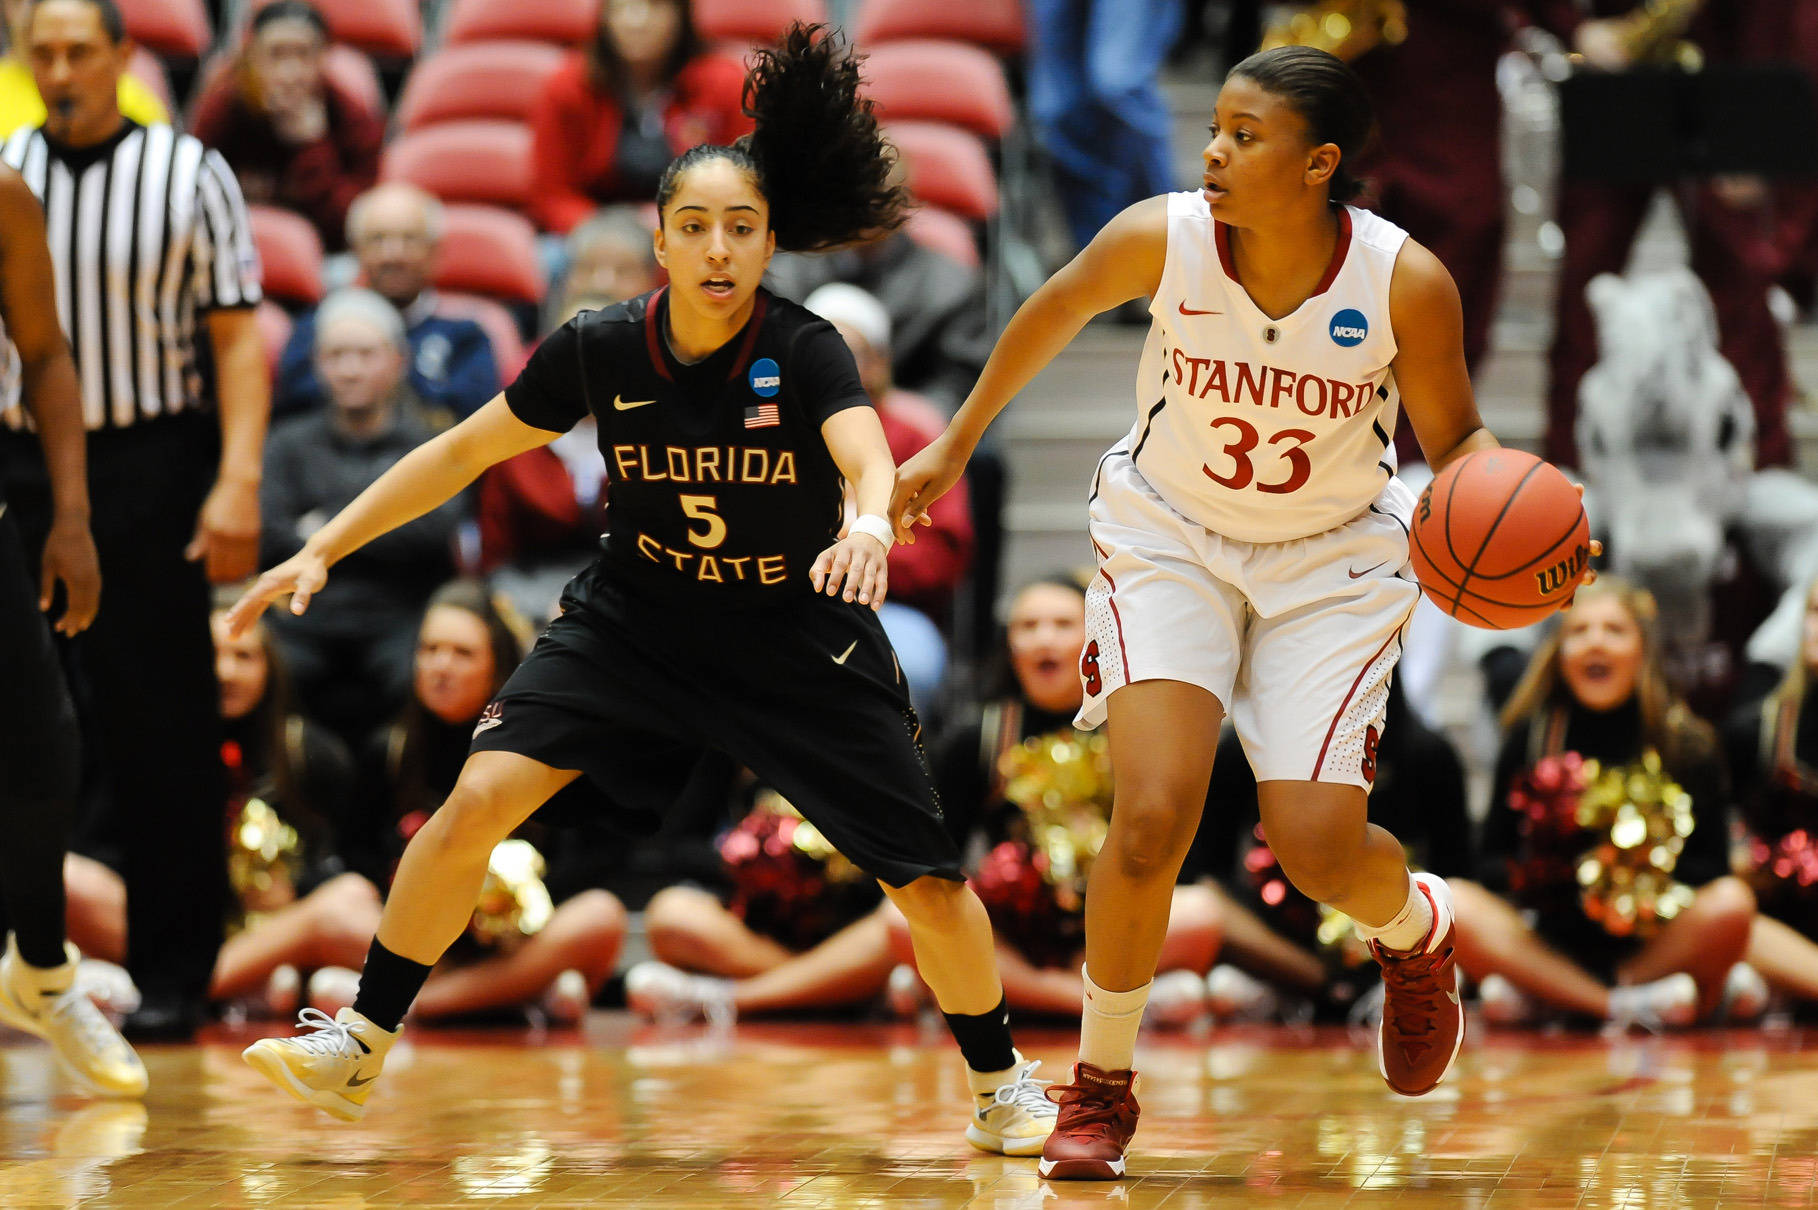 Mar 24, 2014; Ames, IA, USA; Stanford Cardinal guard Amber Orrange (33) looks to pass around Florida State Seminoles guard Cheetah Delgado (5) in the first half of a women's college basketball game in the second round of the NCAA Tournament at James H. Hilton Coliseum. Mandatory Credit: Steven Branscombe-USA TODAY Sports